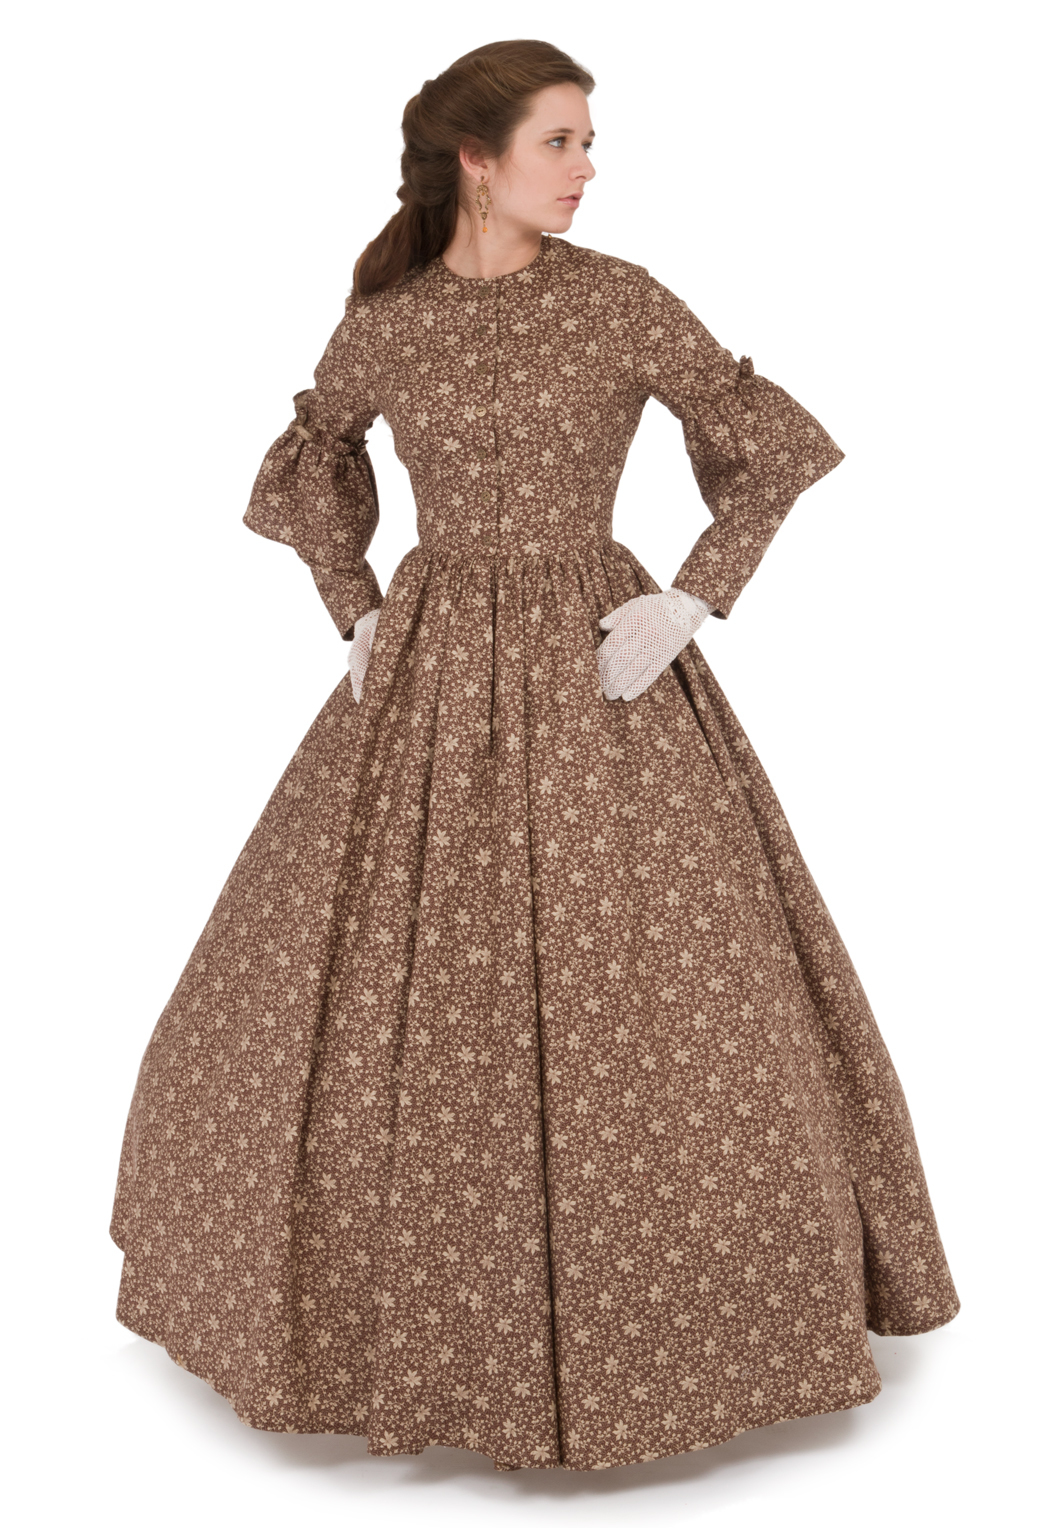 Civil War Gowns from Recollections (Page 2 of 3)